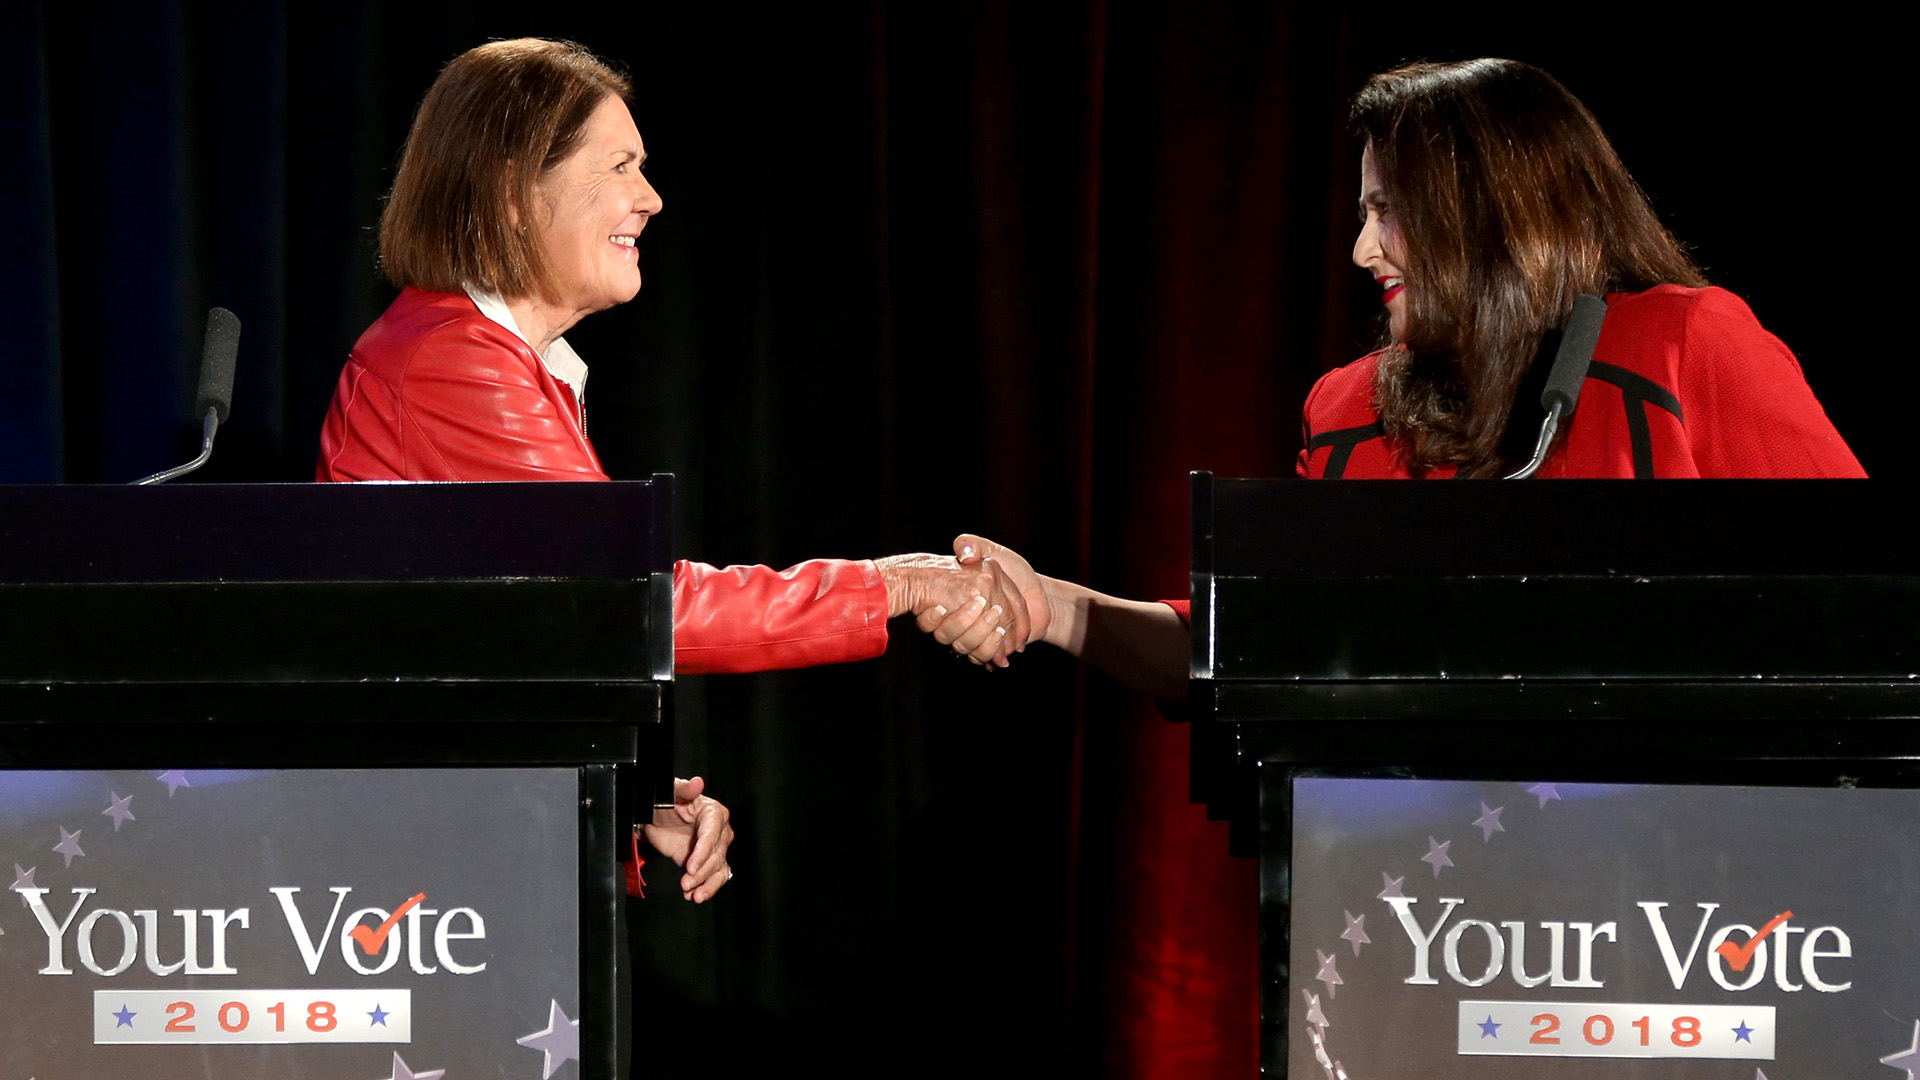 Candidates for the 2nd Congressional District, Democrat Ann Kirkpatrick, left, and Republican Lea Marquez Peterson, shake hands following a televised debate at the Tucson Jewish Community Center, Tuesday, Oct. 9, 2018, Tucson, Arizona.